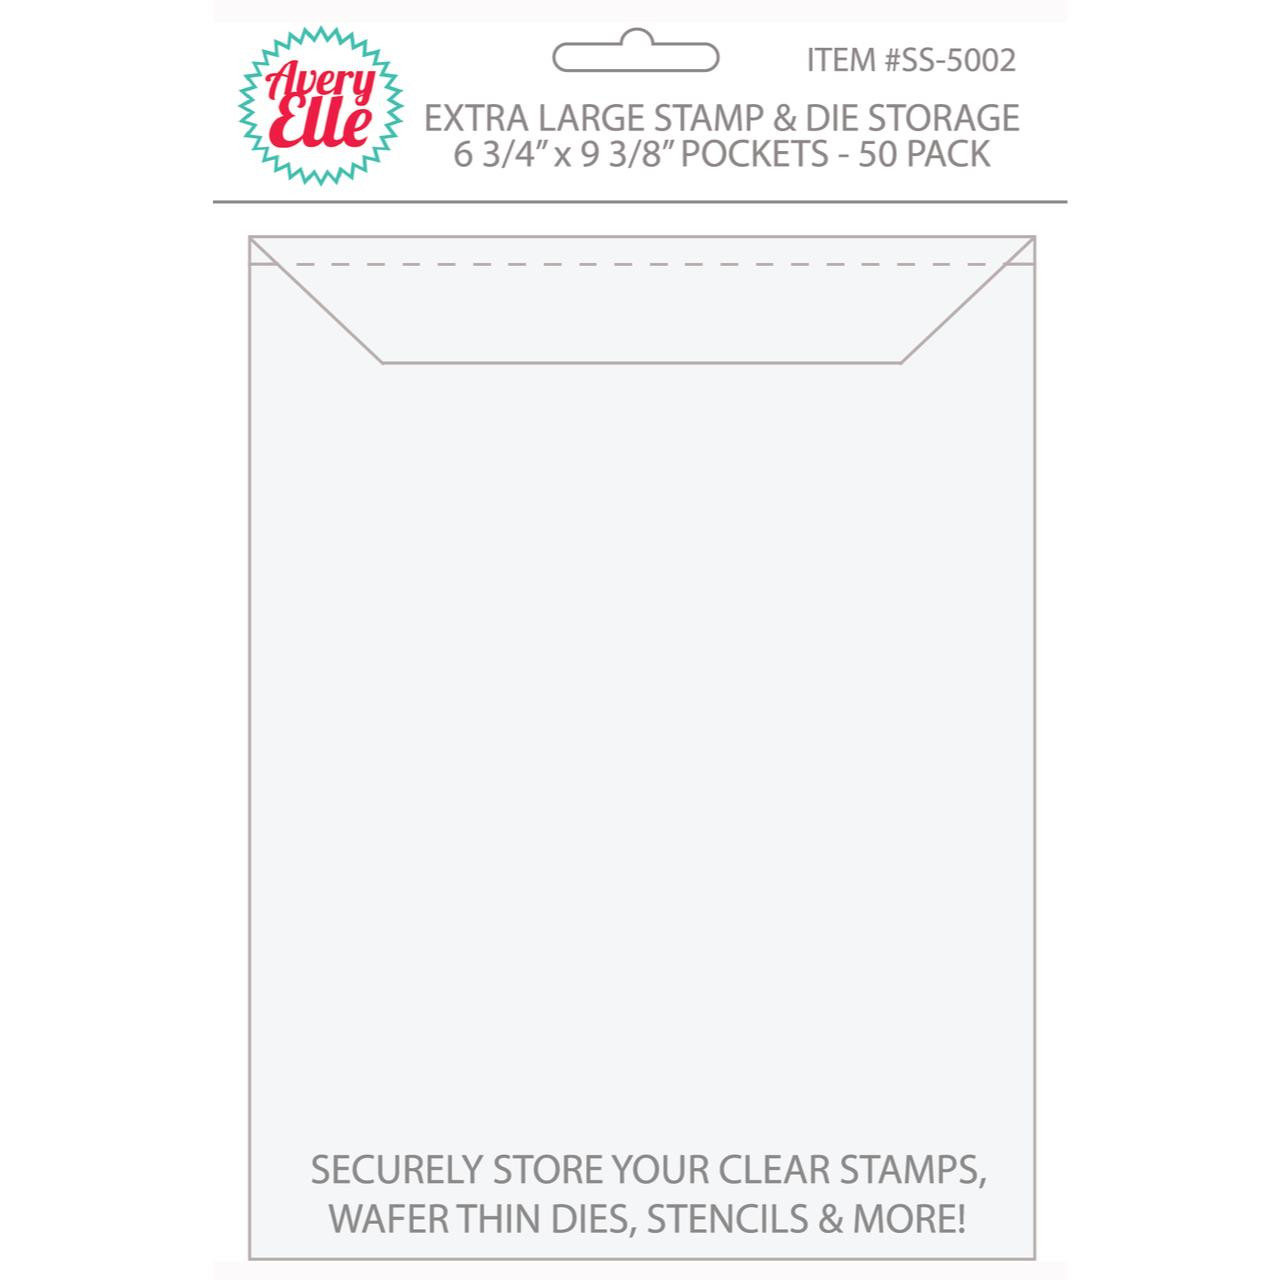 Extra Large -50 pk, Avery Elle Stamp & Die Storage Pockets -